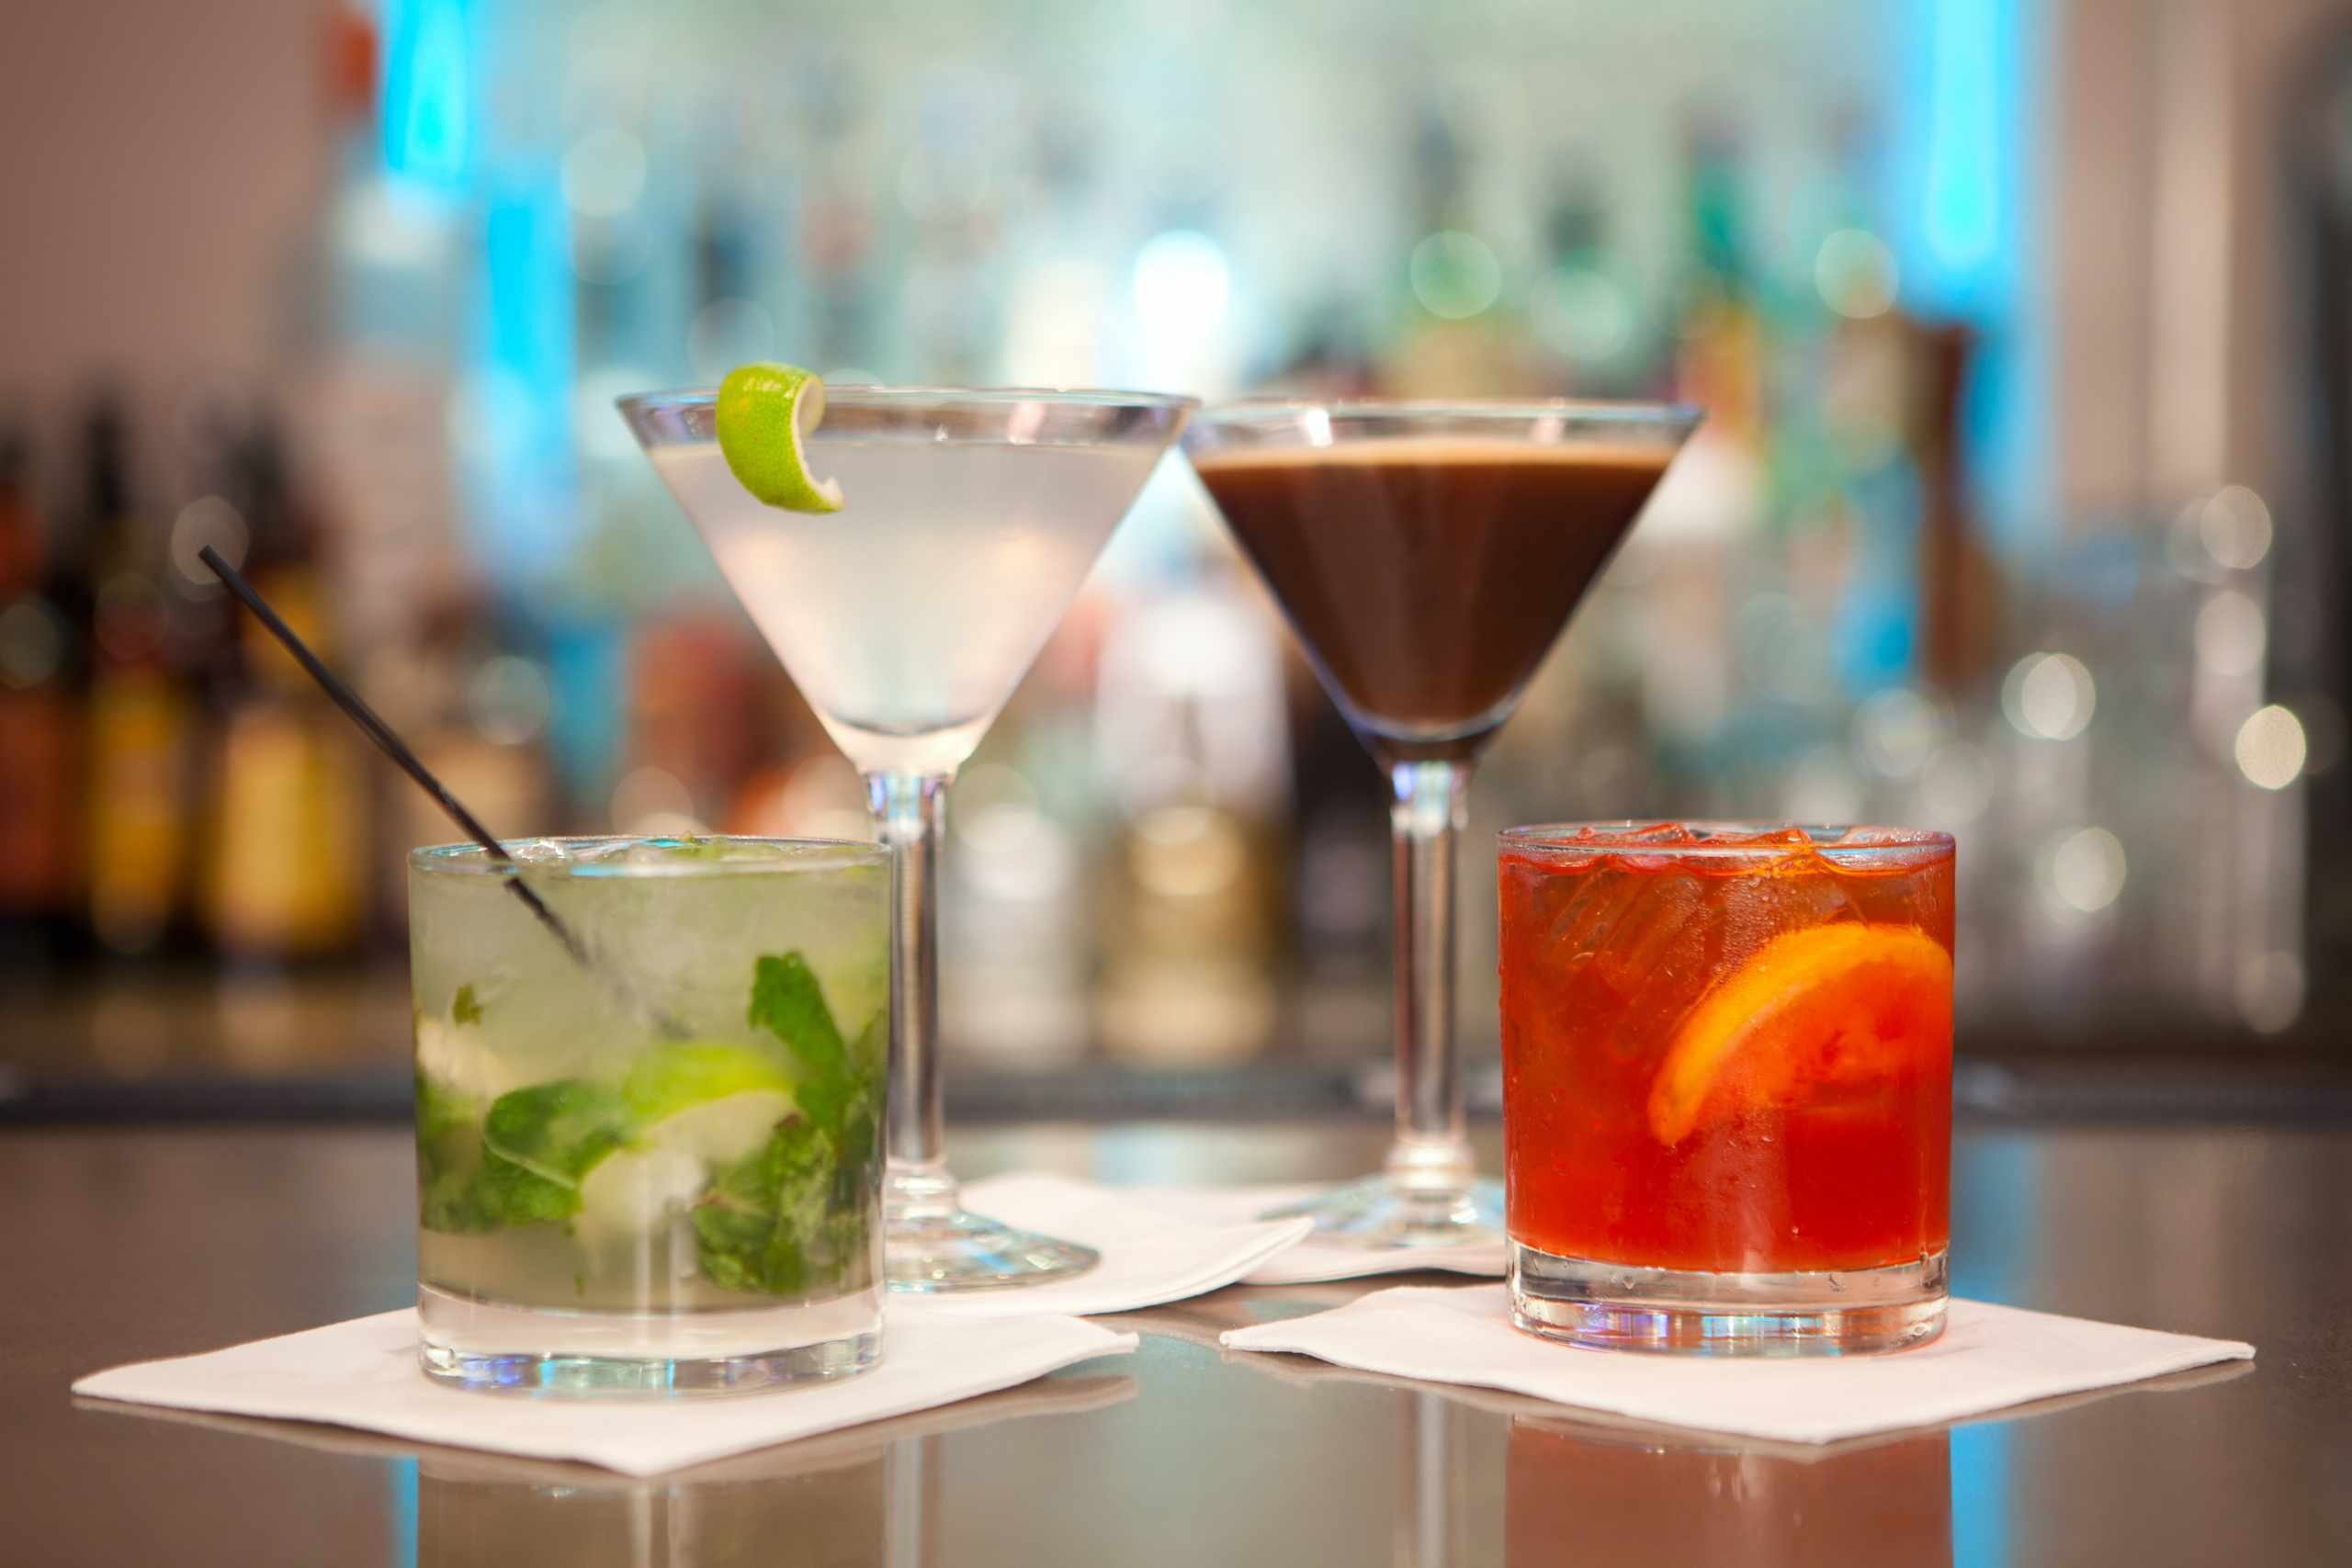 symptoms of withdrawing alcohol